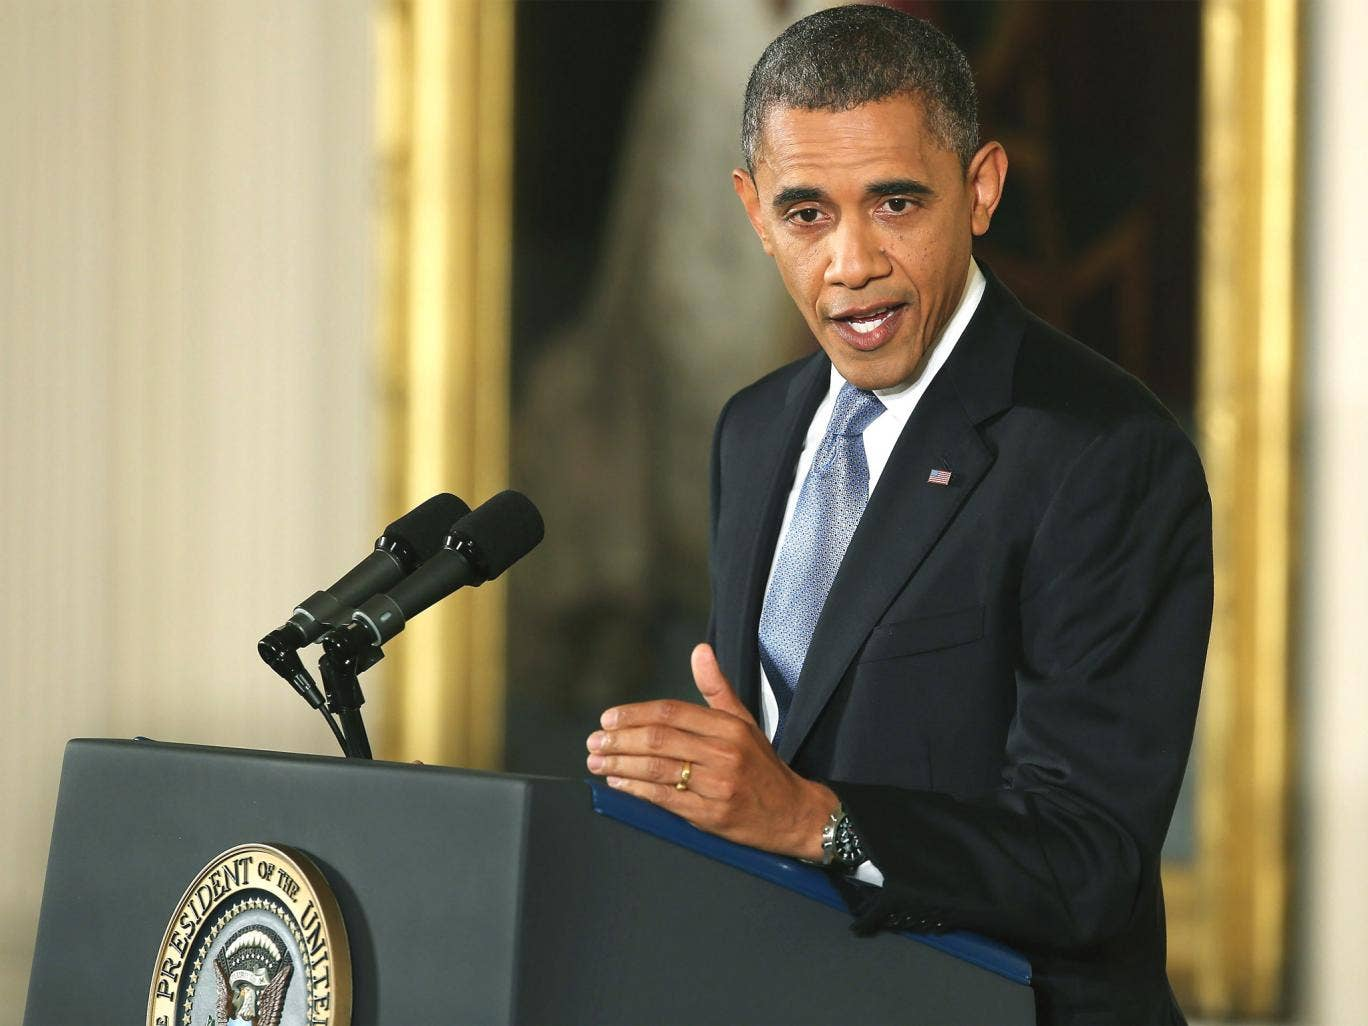 President Barack Obama during the press conference at the White House